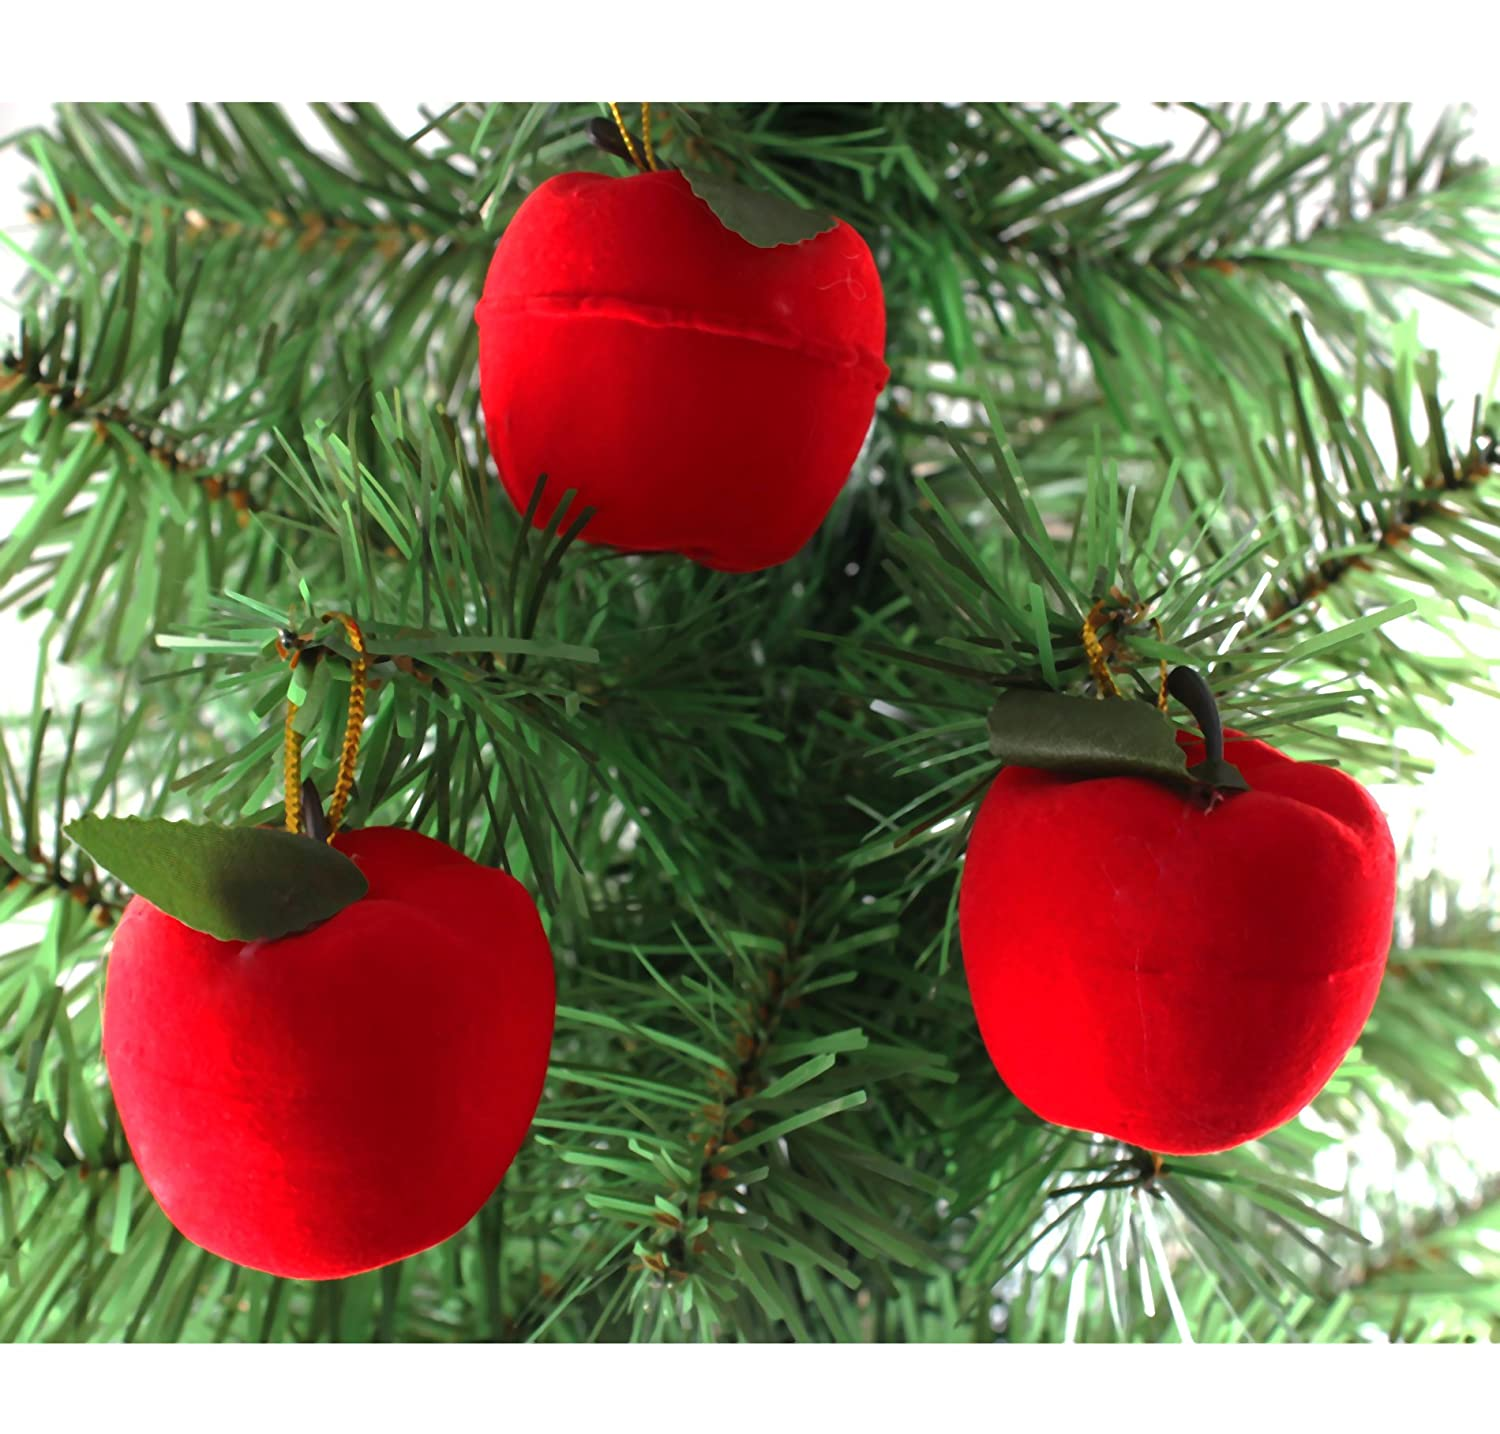 Amazoncom 12 Pcs Christmas Tree Hanging Red Apples Ornaments For